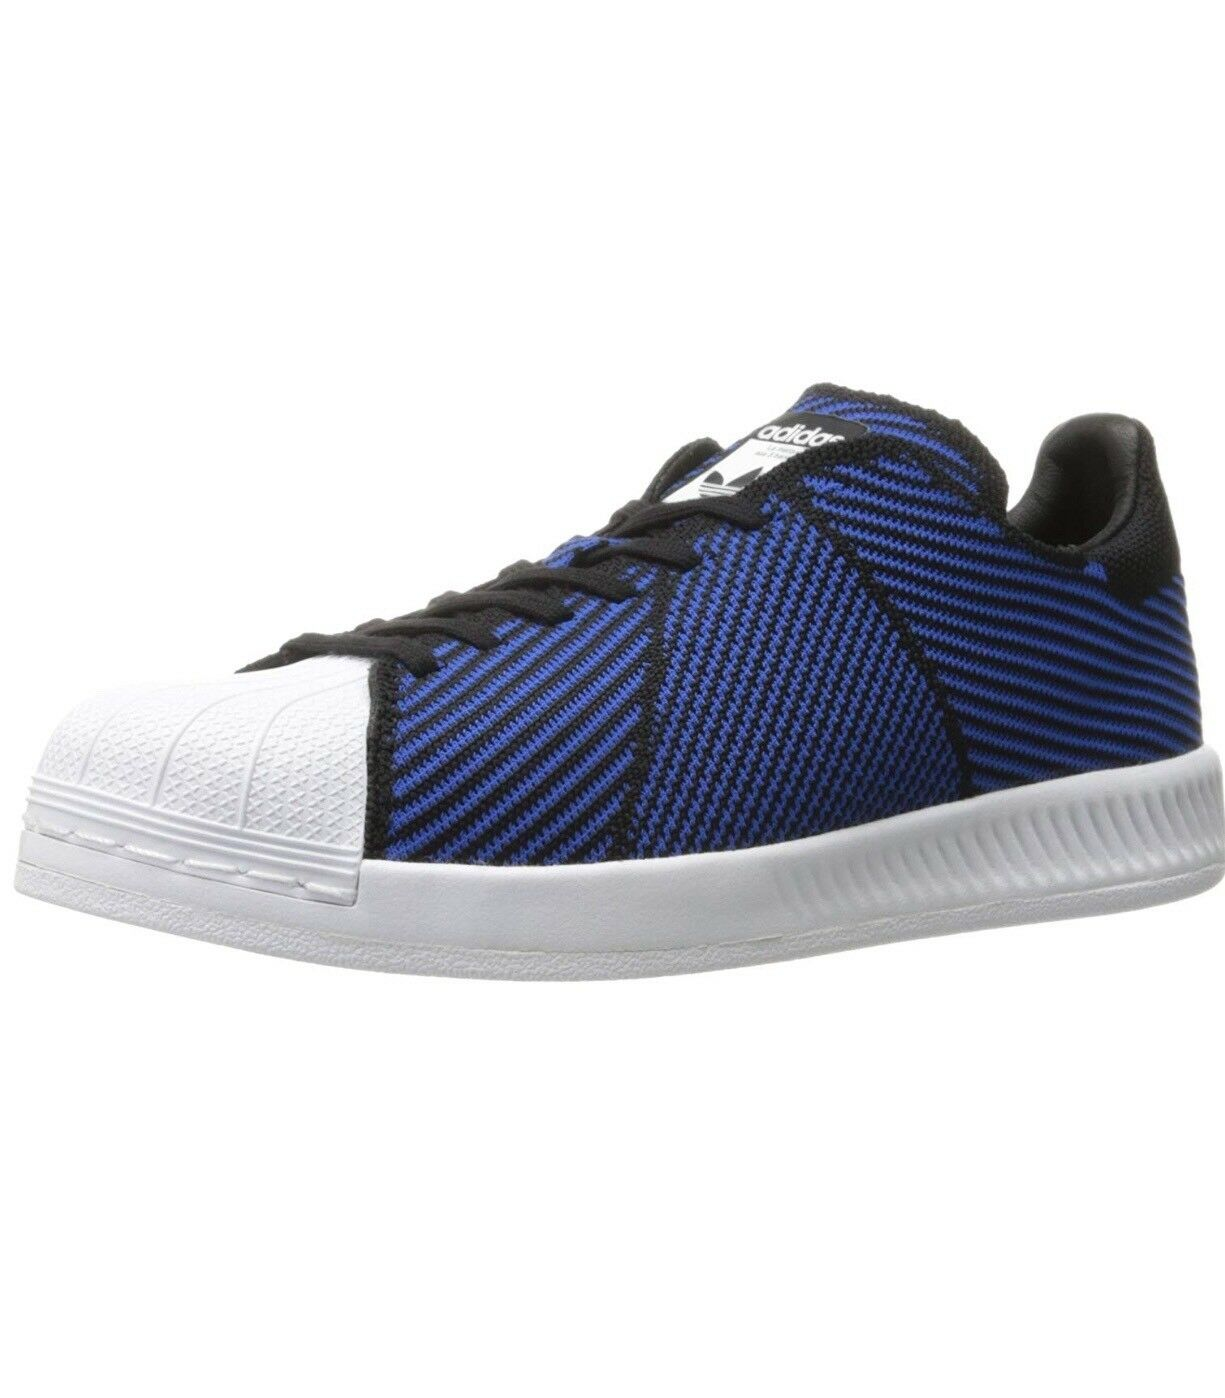 Adidas, Superstar Bounce PK S82242 Blue White Fashion Casual Shoes, Size 10